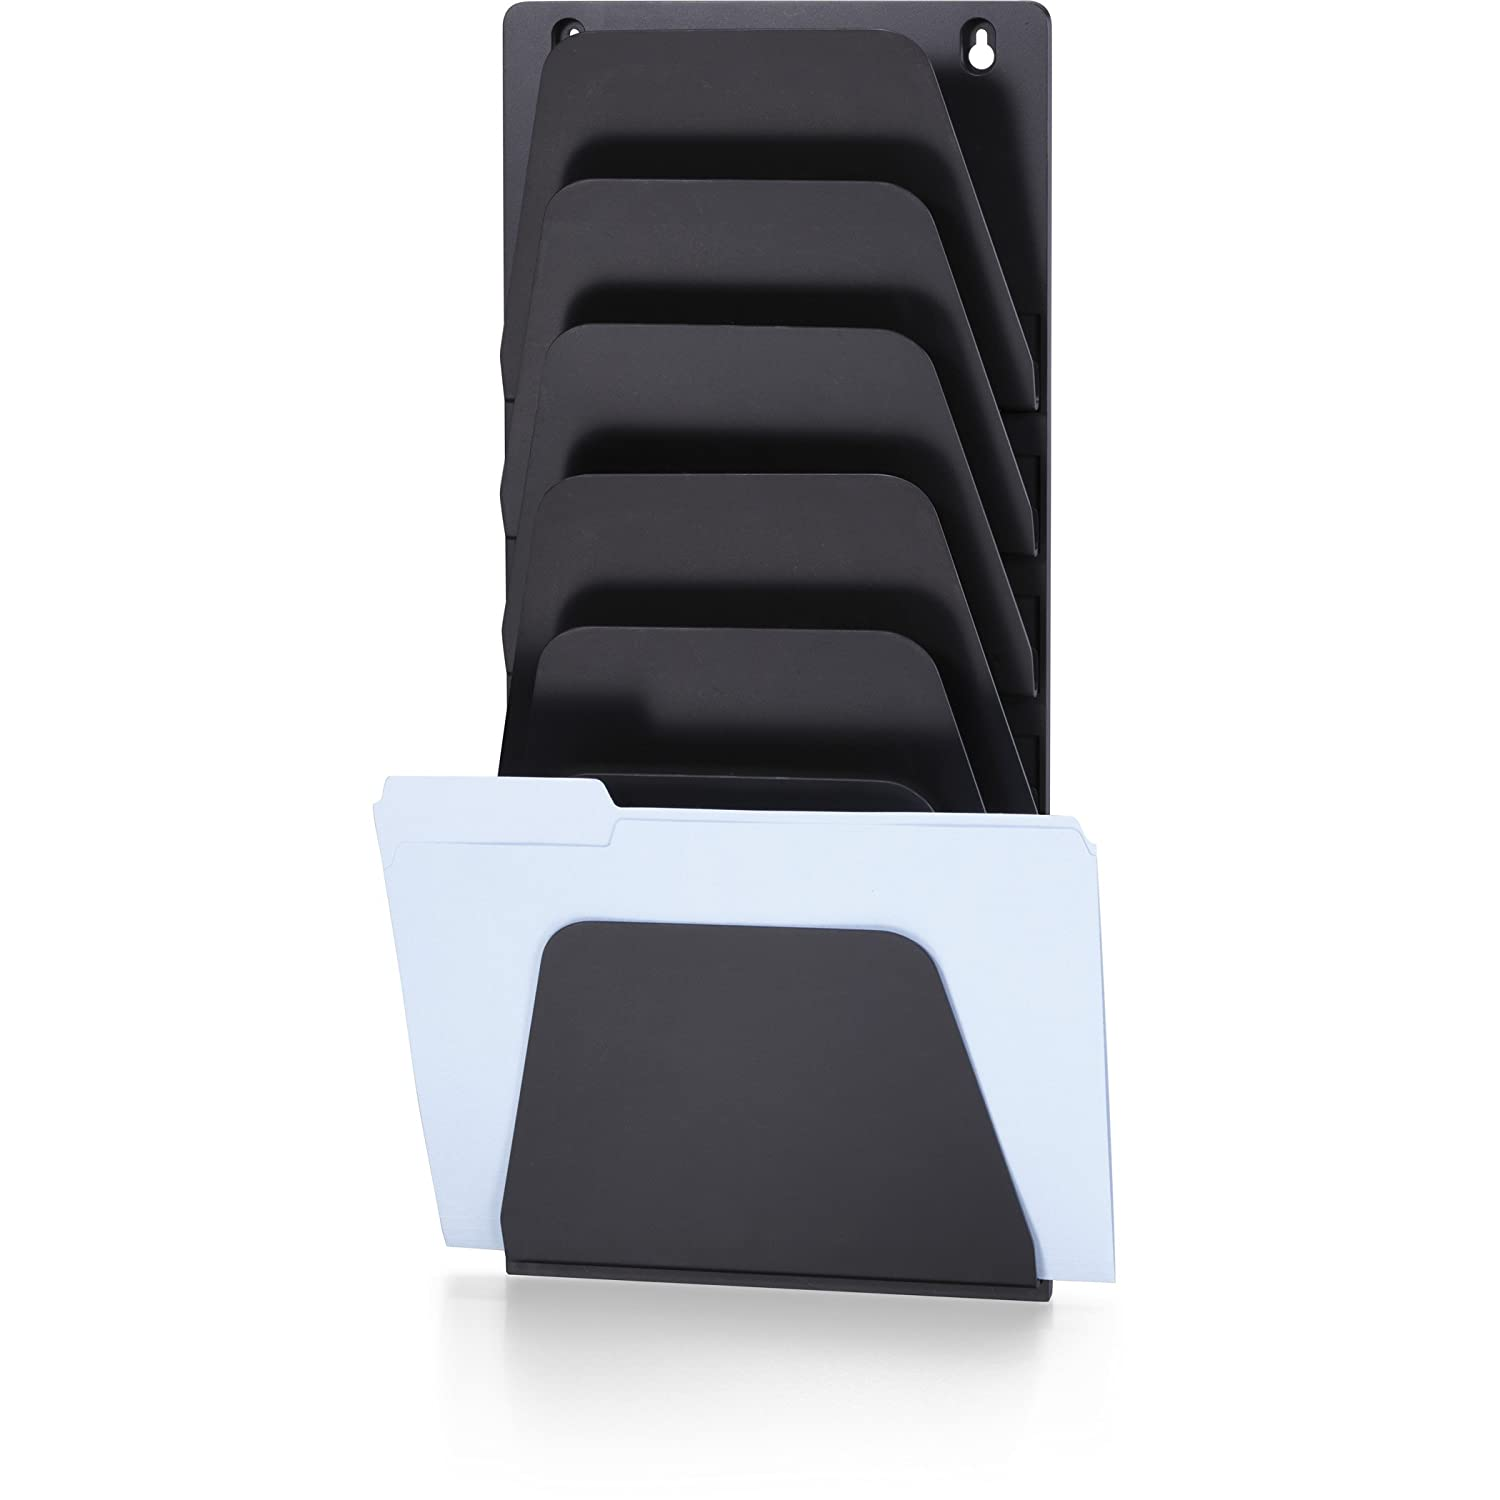 office door mail holder. Amazon.com : Officemate Wall File Holder, Letter/Legal, 7 Pockets, Black (21505) Hanging Files Office Products Door Mail Holder C